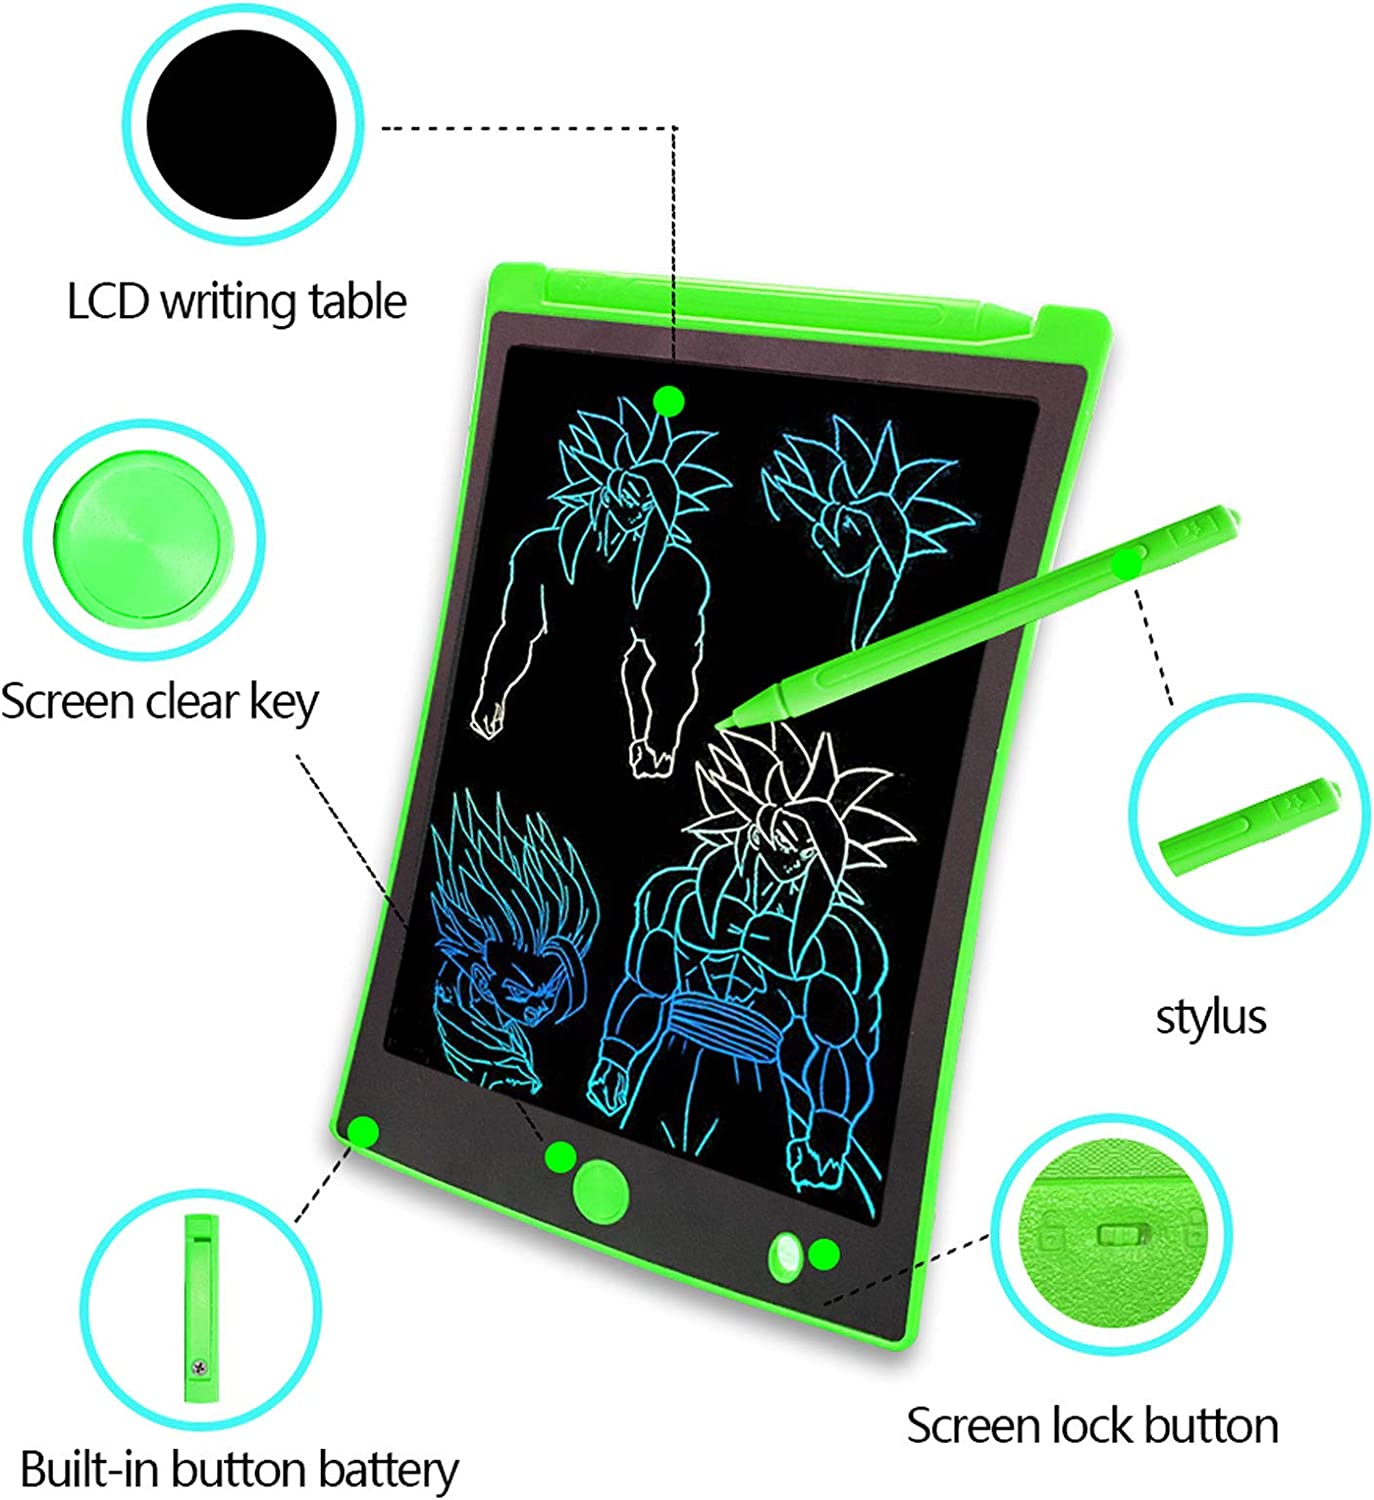 Arolun LCD Writing Tablet, 8.5 Inch Colorful Screen Digital eWriter Electronic Graphics Tablet Portable Writing Board Handwriting Doodle Drawing Pad for Kids Adult Home School Office (Green)